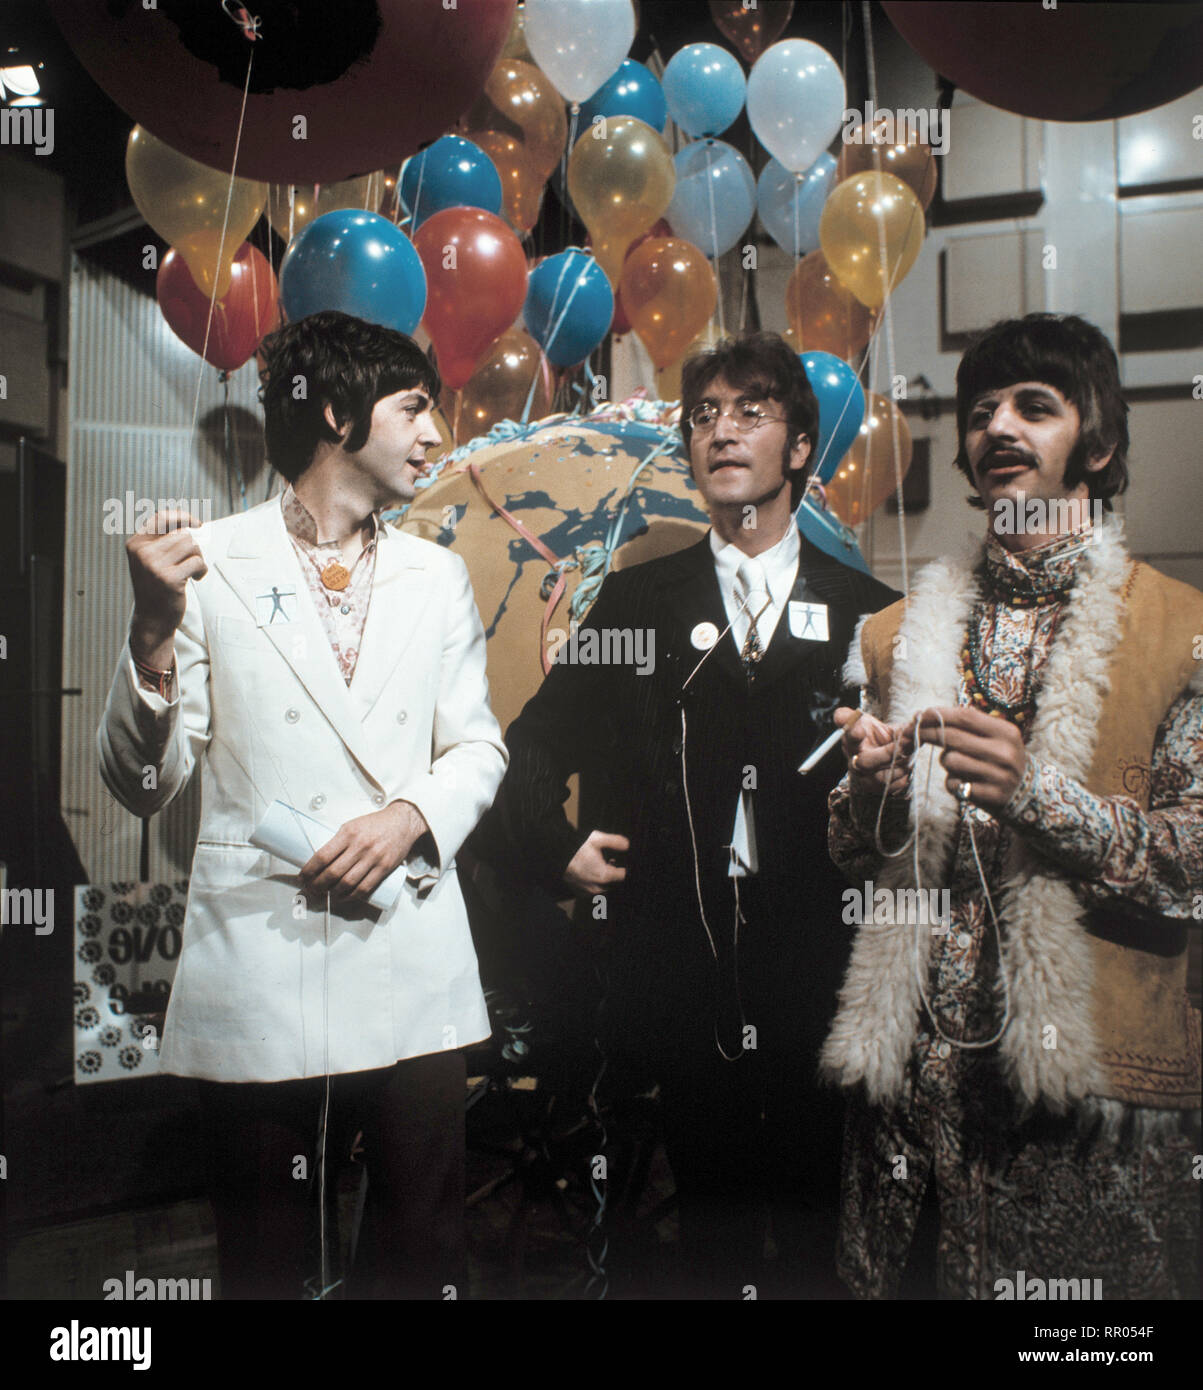 All You Need Is Love The Beatles Paul Mccartney John Lennon Ringo Starr Aufnahme 1967 Uberschrift The Beatles Stock Photo Alamy